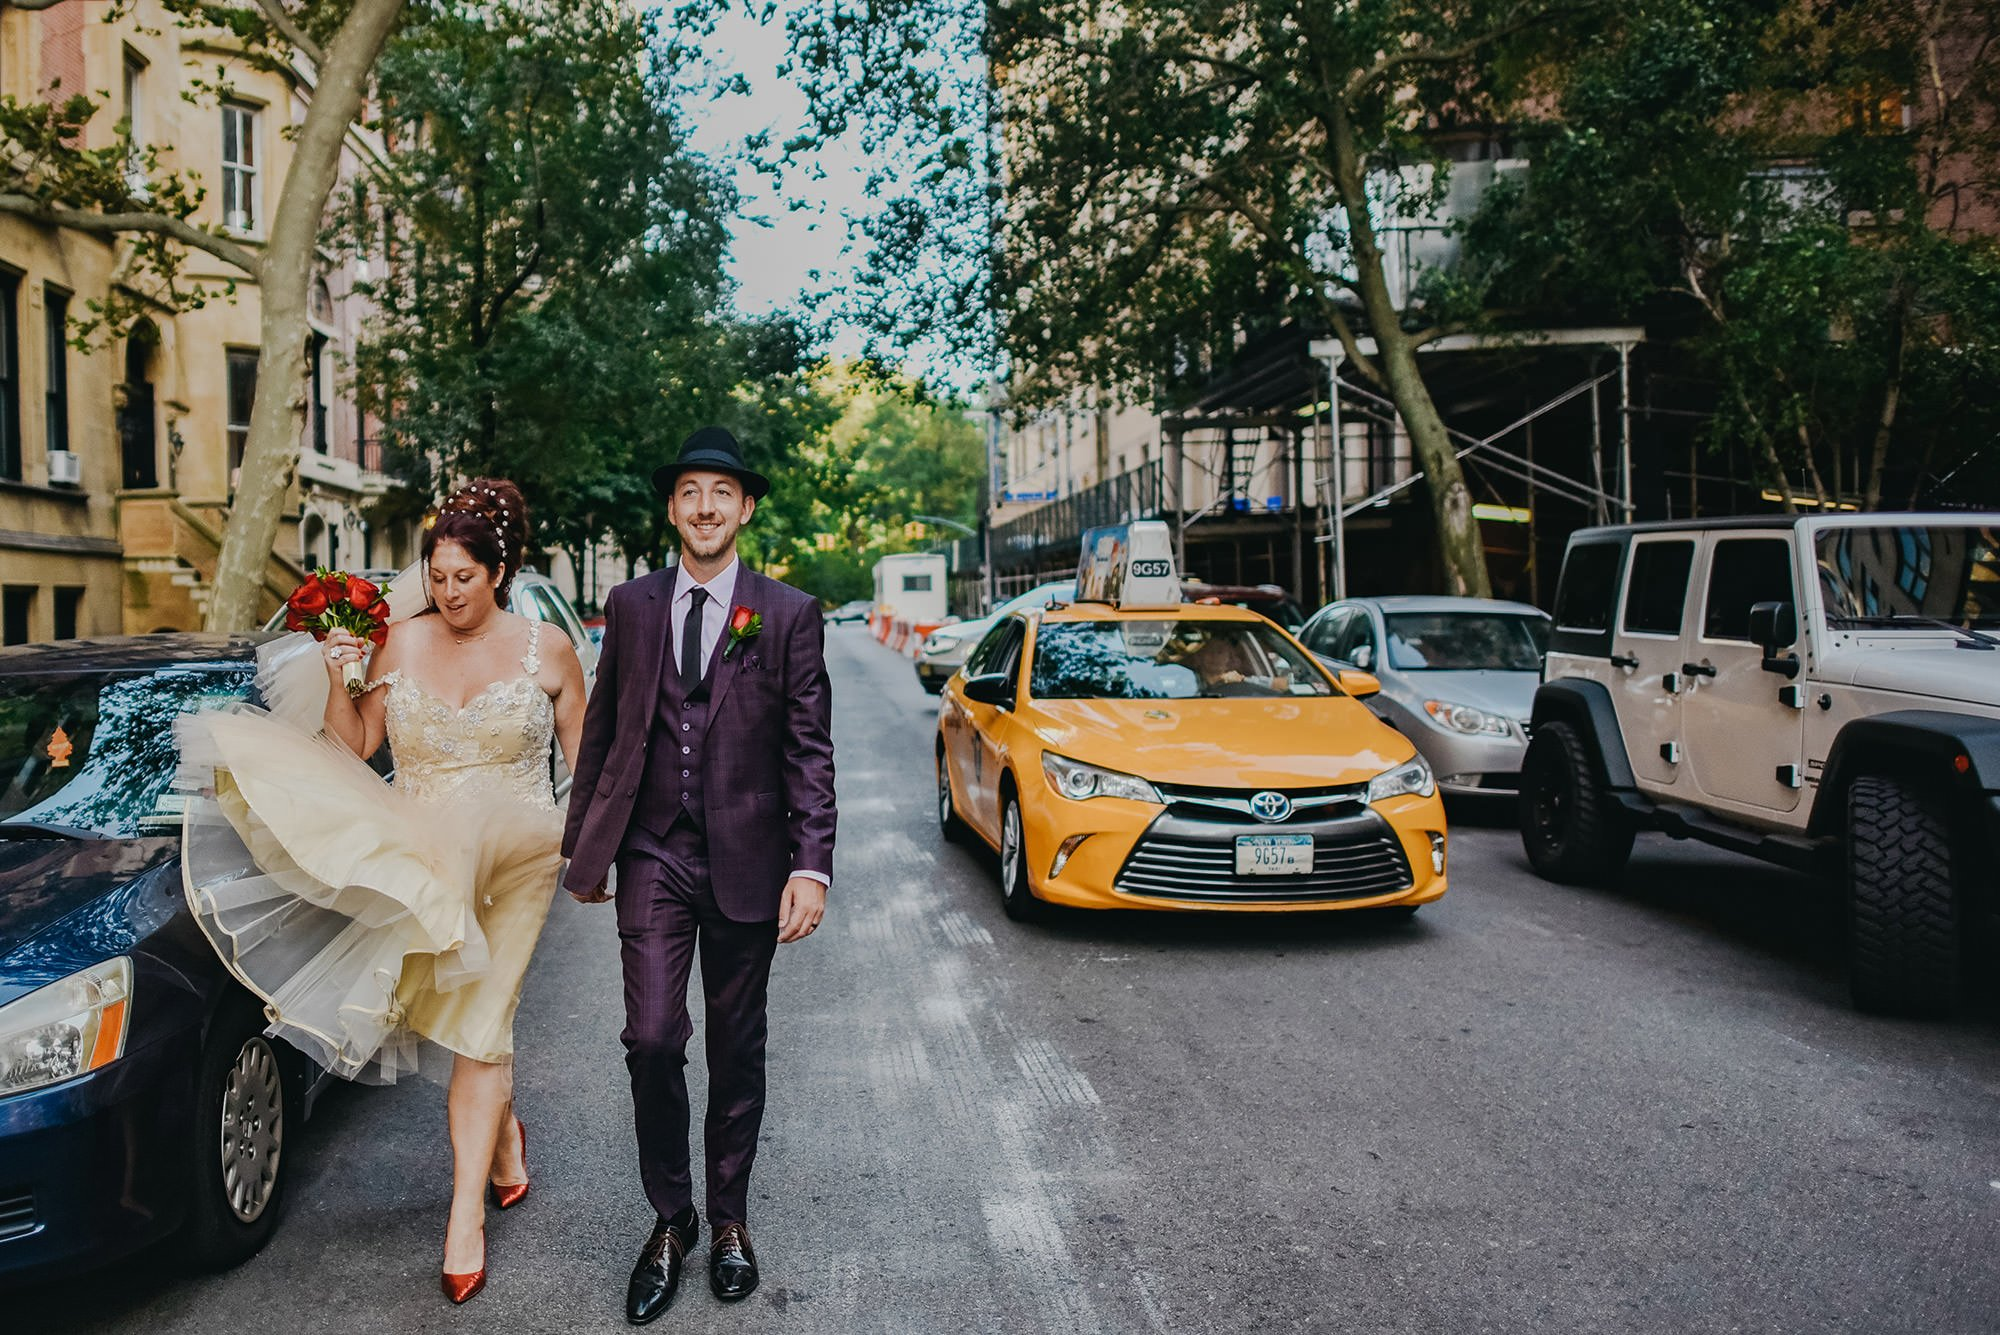 bride and groom walking on a new york with yellow cab behind them street a new york , quirky destination weddings, wedding, destination wedding new york